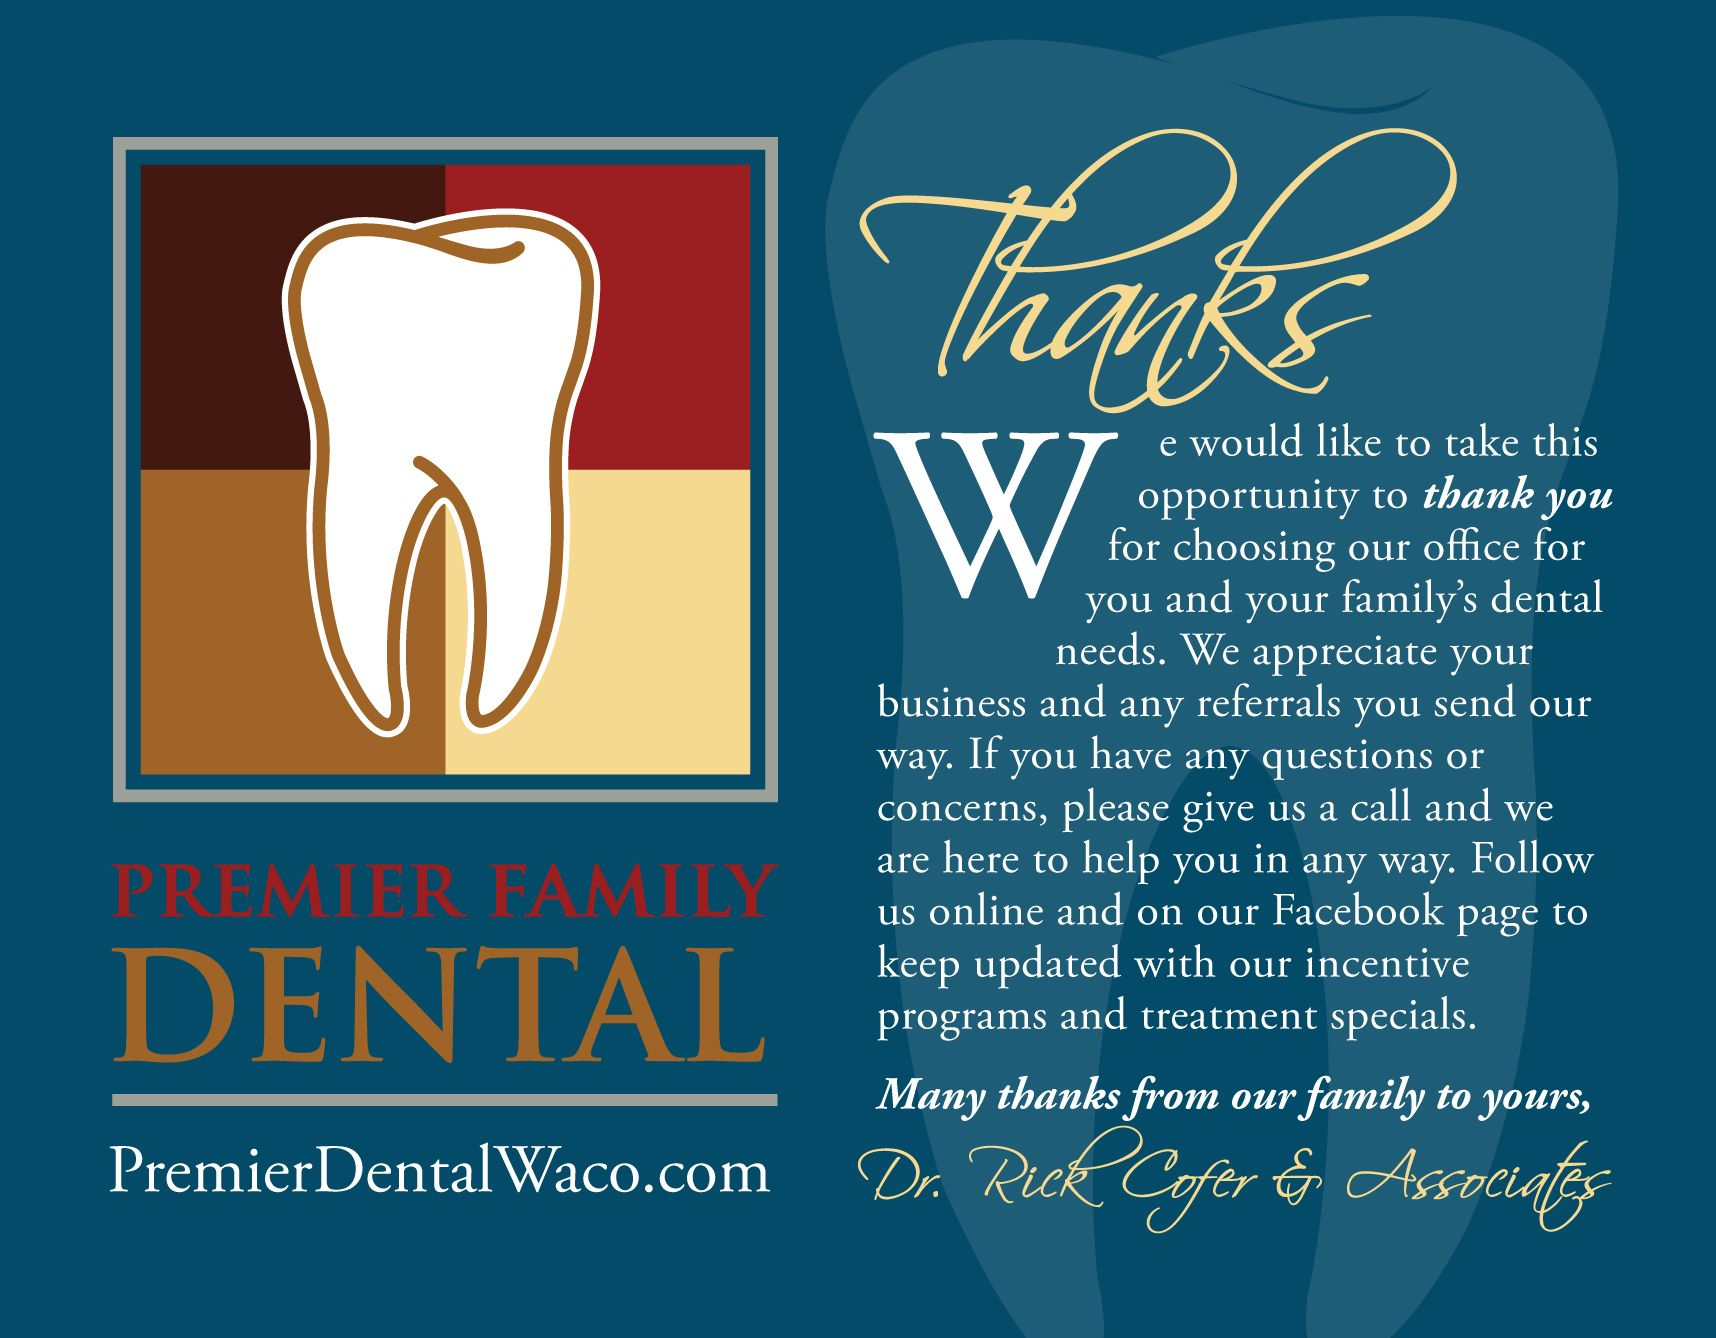 thank you cards designed for a dental practice